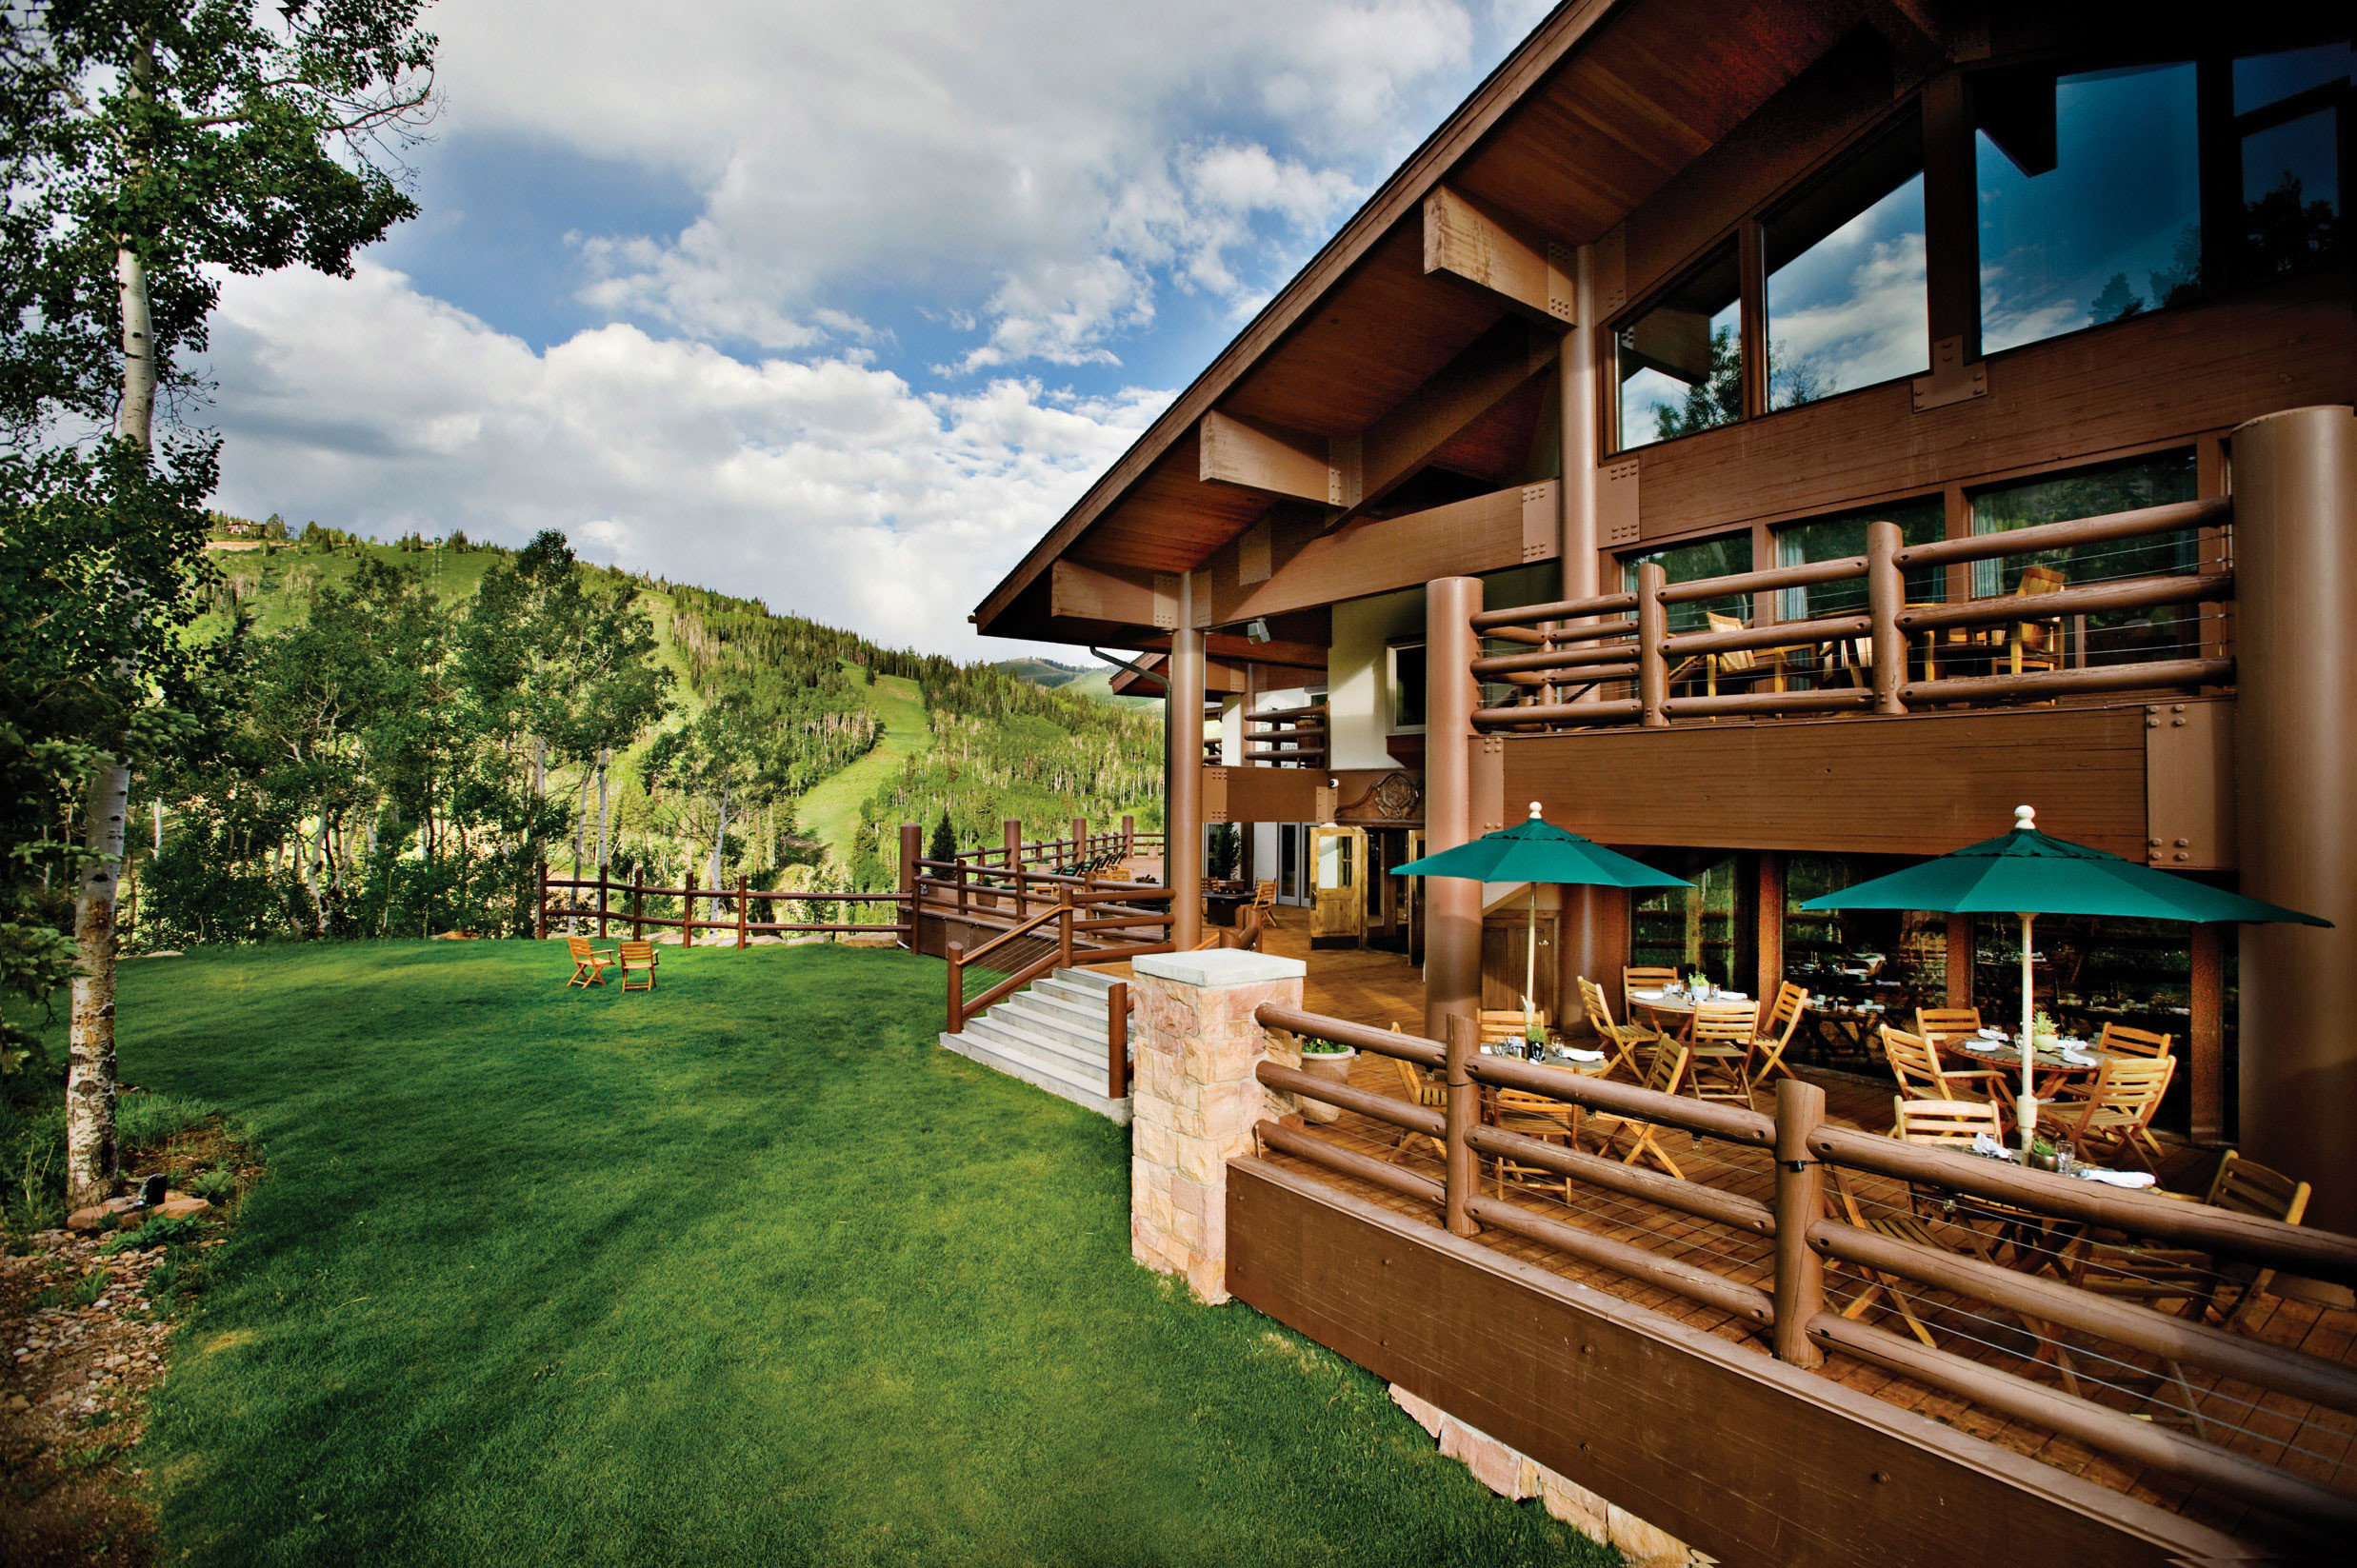 Dining Eat Exterior Grounds Lodge Patio Rustic Scenic views grass building house home Resort log cabin